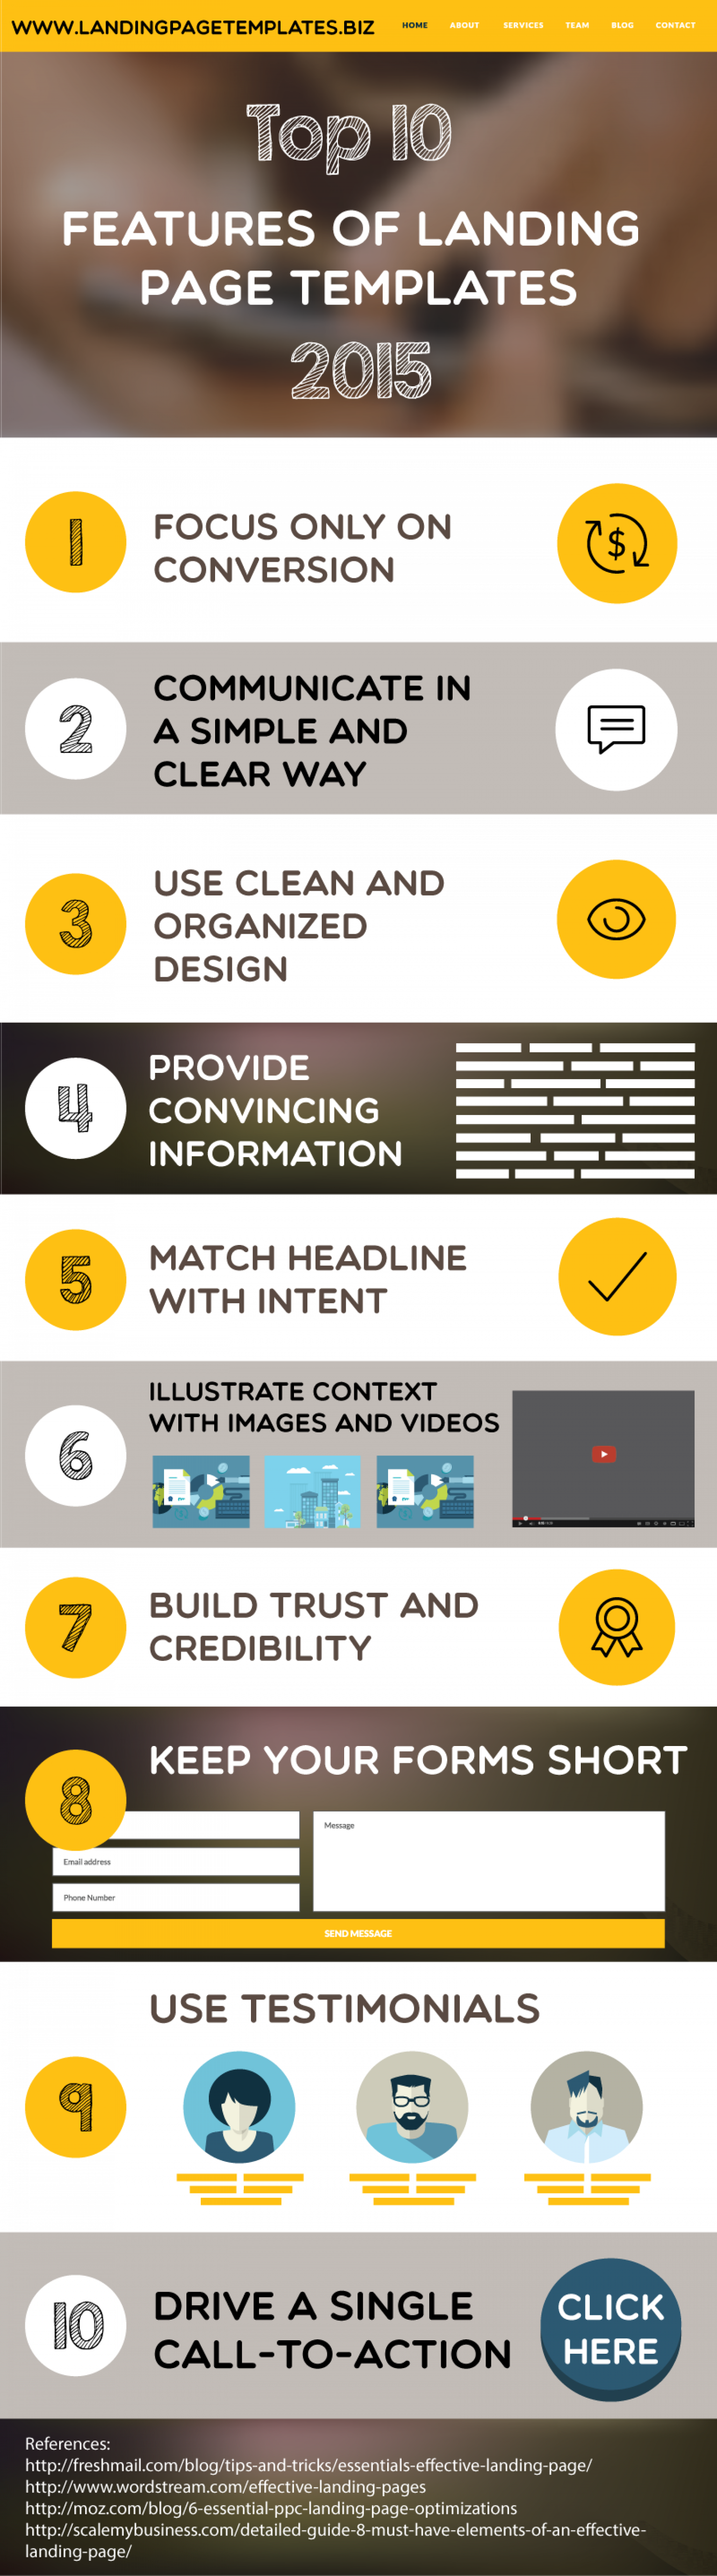 top 10 features of landing page templates 2015